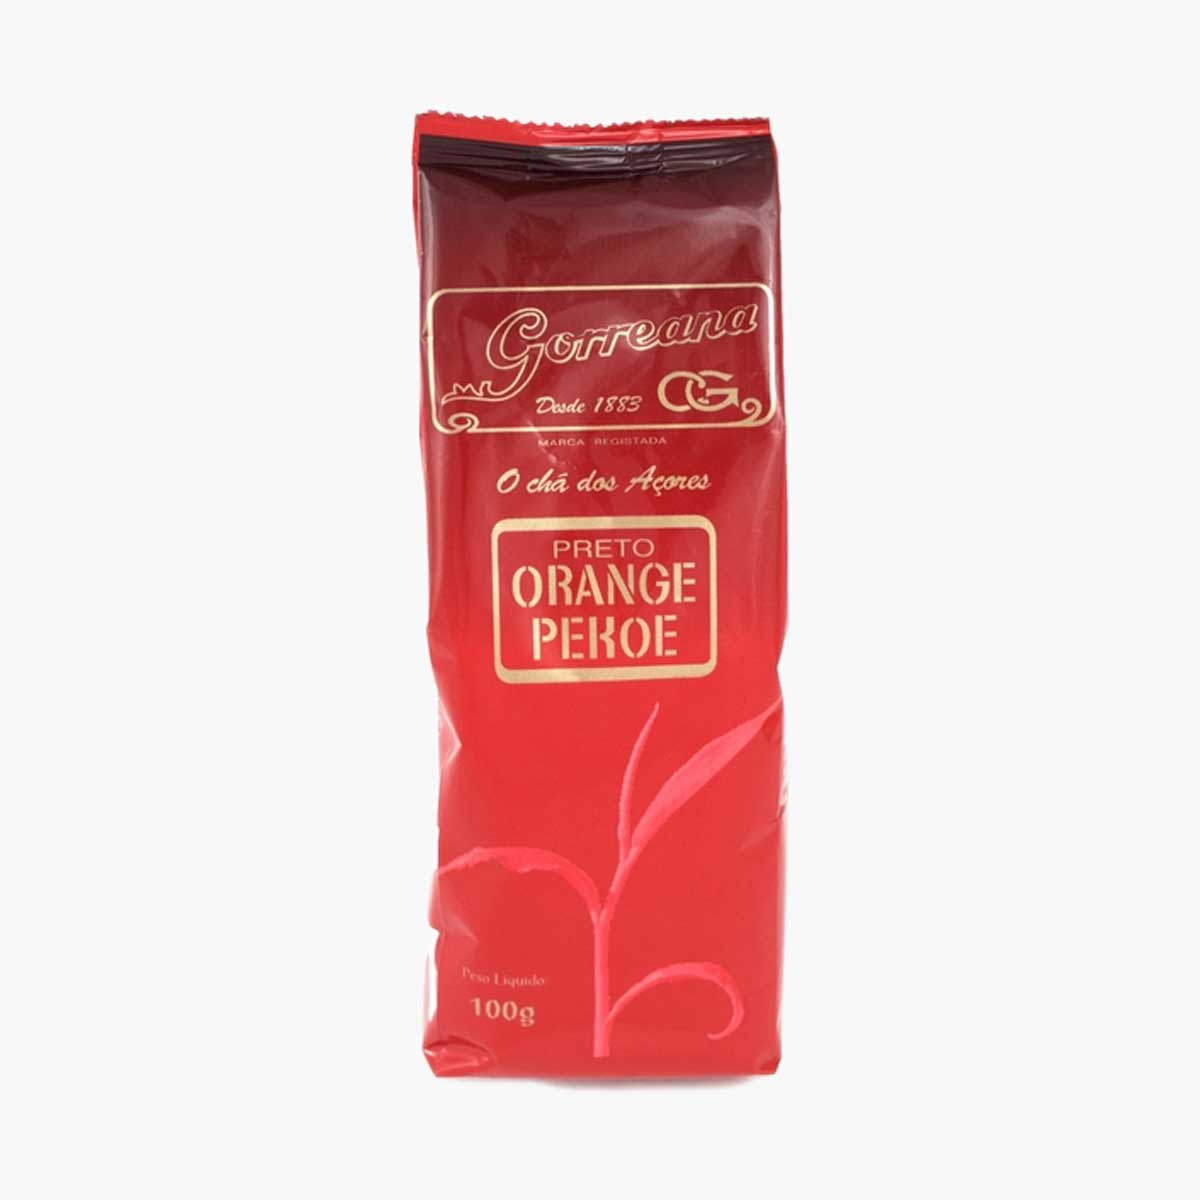 Gorreana Orange Pekoe Black Tea